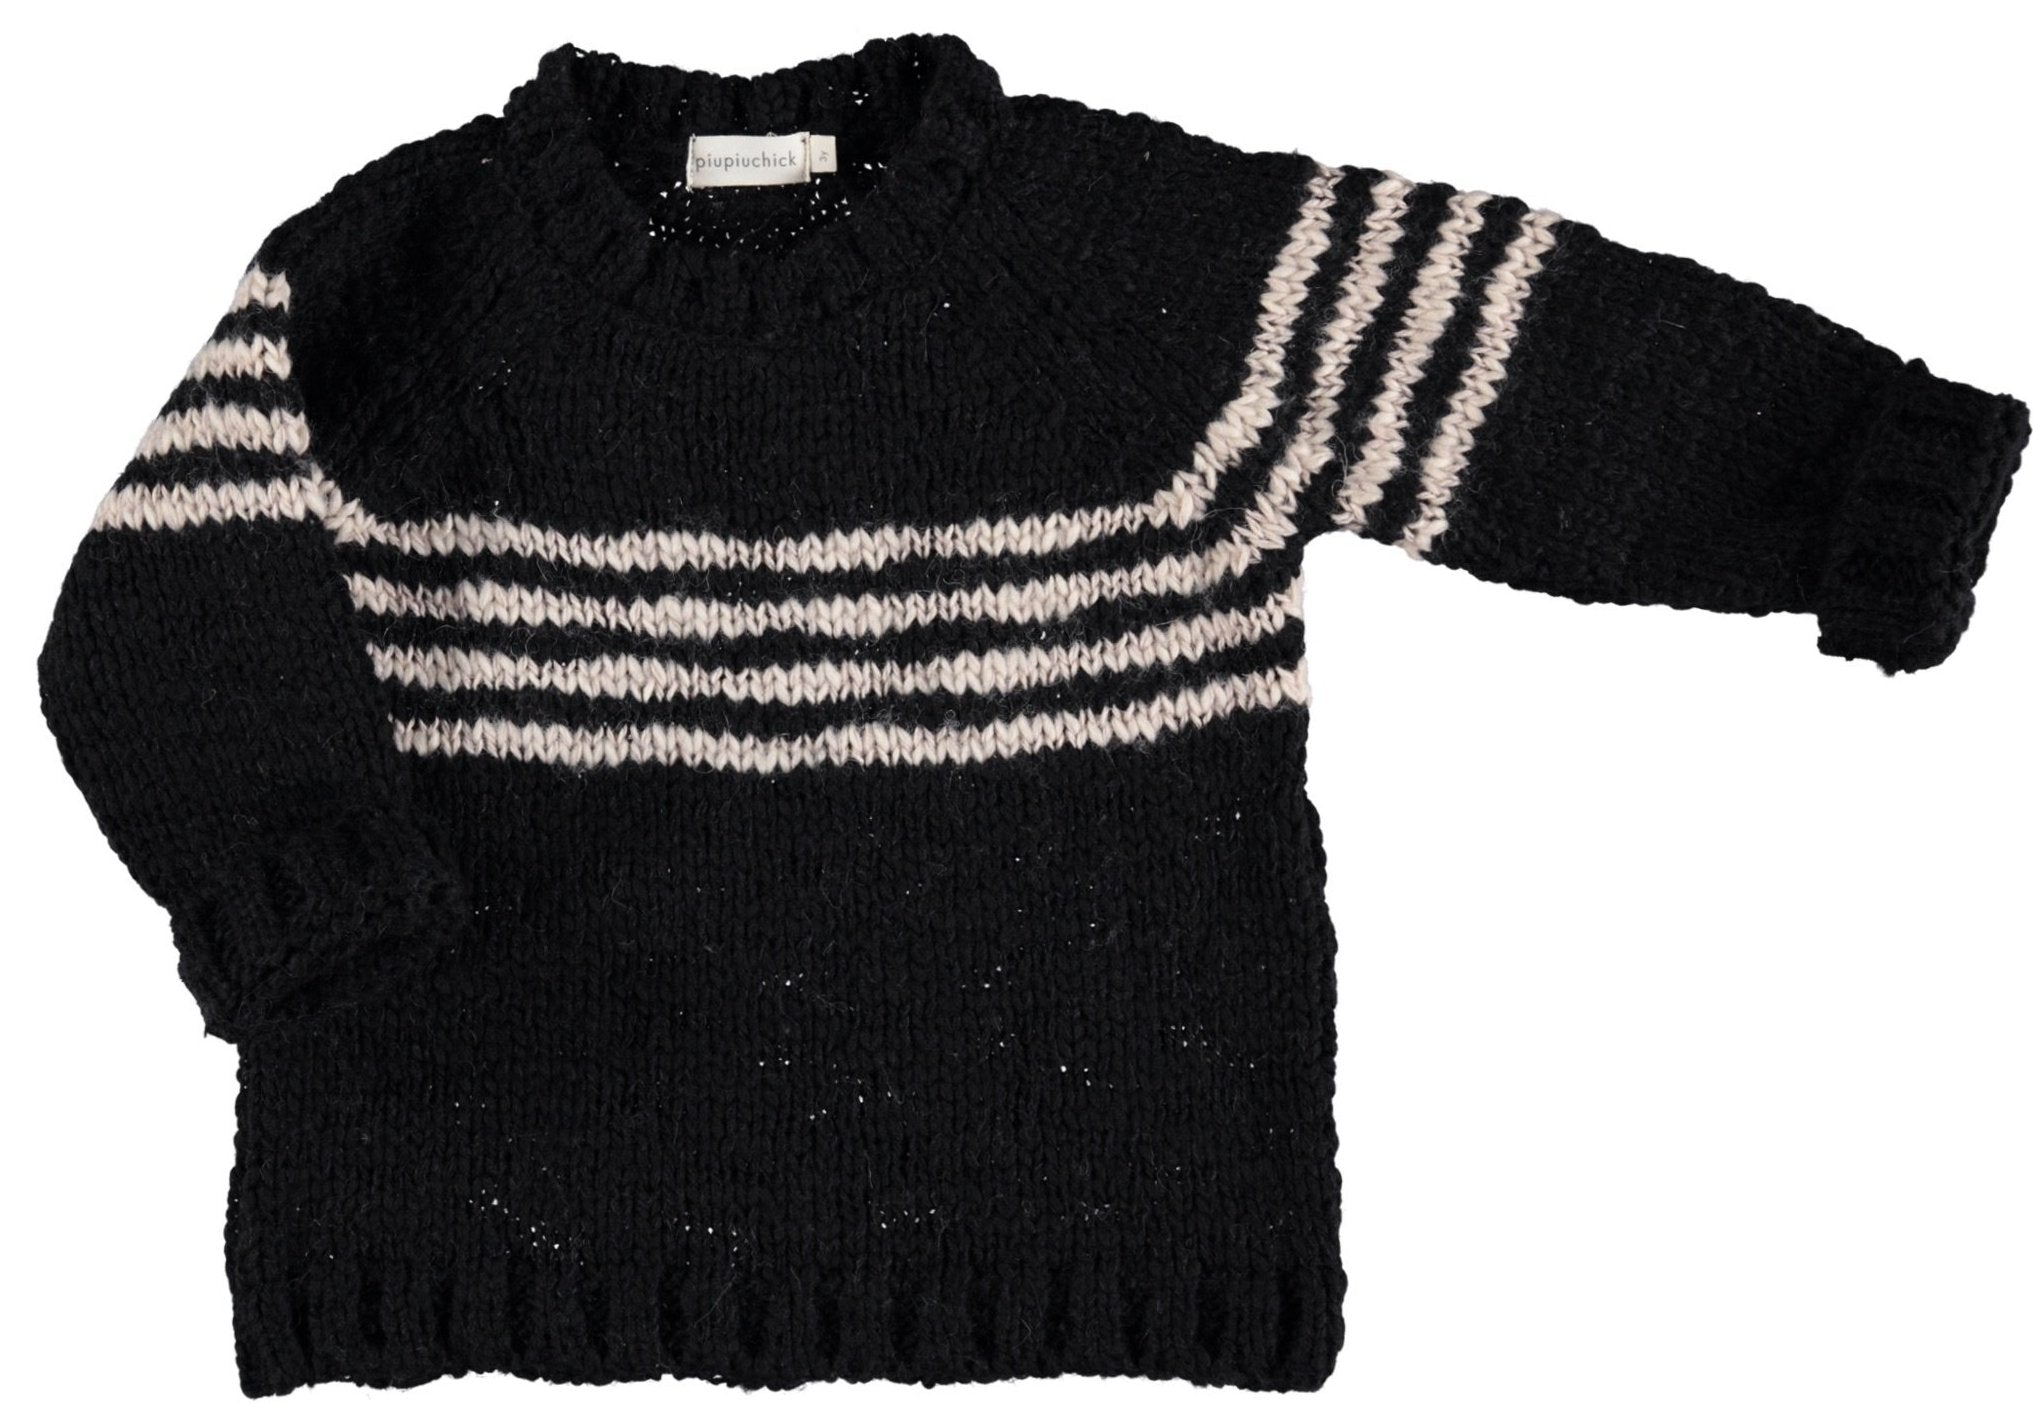 Piupiuchick | Knitted sweater | Black & ecru stripes.